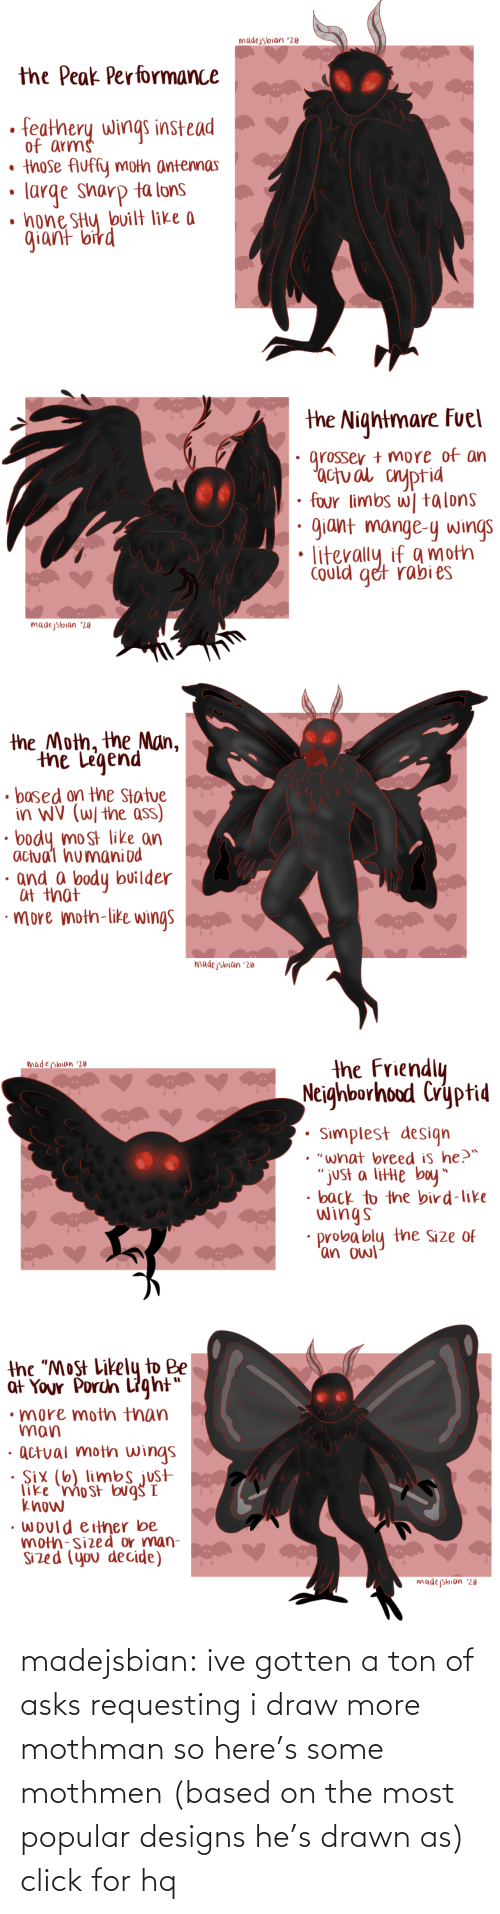 "Just A: madejsbian '20  the Peak Performance  feathery wings instead  of arms  • those Auffy moth antennas  large sharp ta lons  • hone SHy bvilt like a  giant bird   the Nightmare Fuel  grosser + more of an  'actual cnyptid  four limbs w| talons  giant mange-y wings  Could get rabi es  madejsbian '20   the Moth, the Man,  the Legend  • based on the Statue  in WV (W/ the ass)  body most like an  actual humaniod  · and a body builder  at that  ·more moth-like wings  madejsbian '20   the Friendly  Neighborhood Cryptid  madejsbian '20  Simplest design  • ""what breed is he?™  ""just a litte boy""  • back to the bird-like  wings  probably the Size of  'an owl   the ""Most Likely to Be  at Your Porch Light""  •more moth than  man  · actual moth wings  · Six (6) limbs just  like 'mo st bug I  know  • would either be  moth-sized or man-  Sized (you decide)  madejsbian '20 madejsbian: ive gotten a ton of asks requesting i draw more mothman so here's some mothmen (based on the most popular designs he's drawn as)